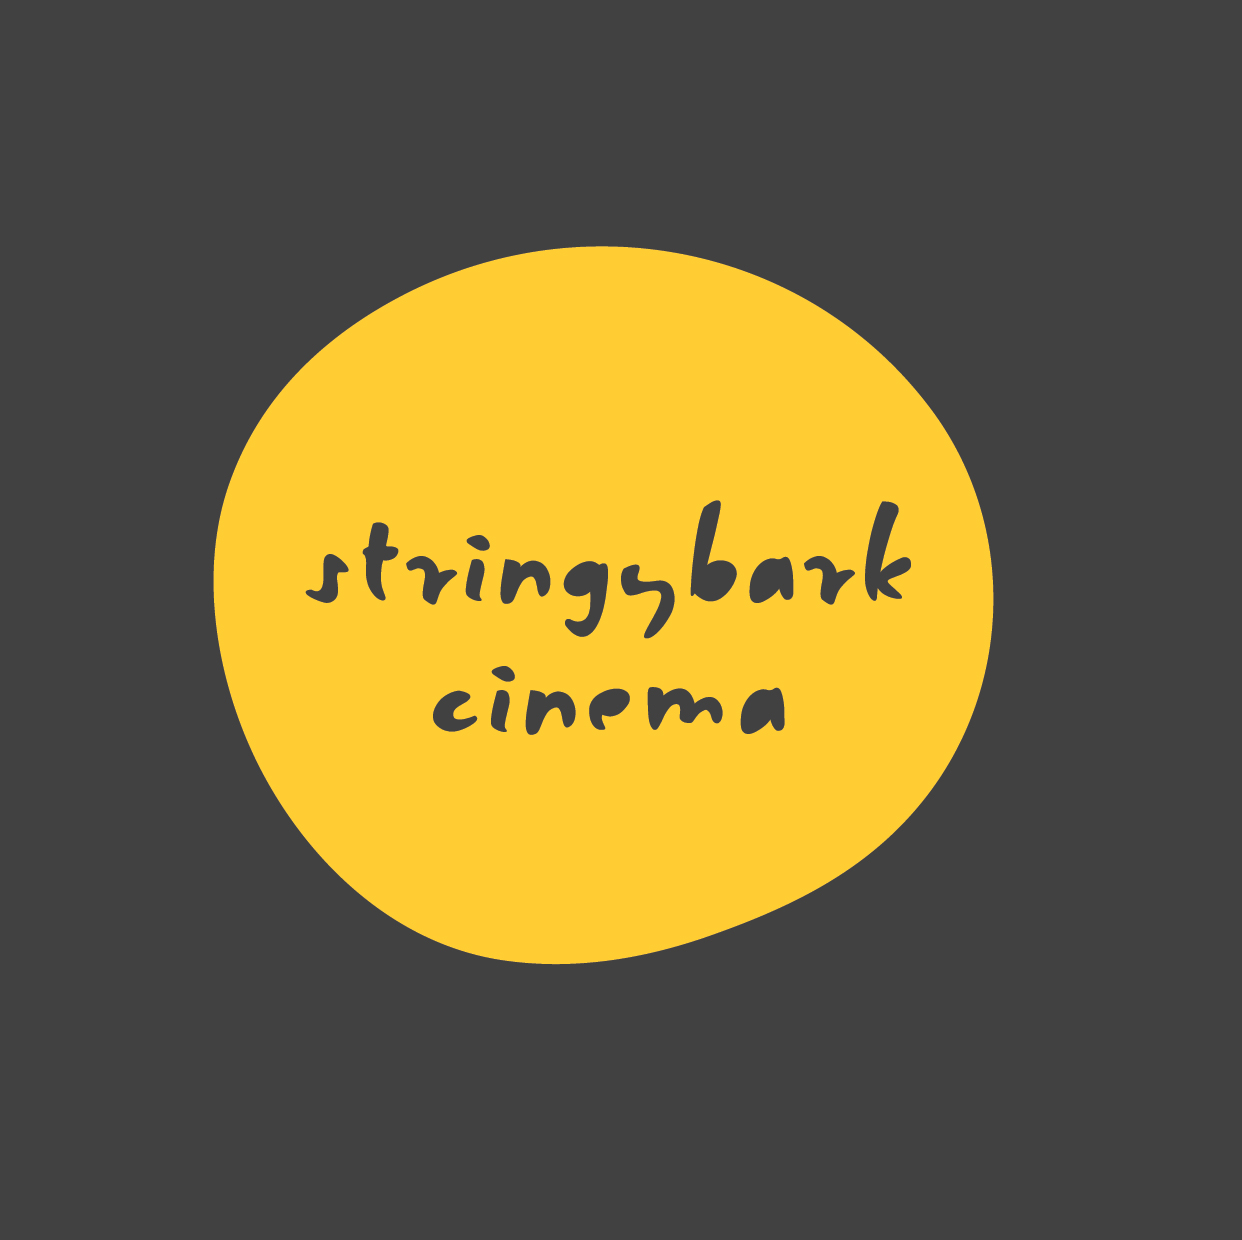 Stringybark Cinema